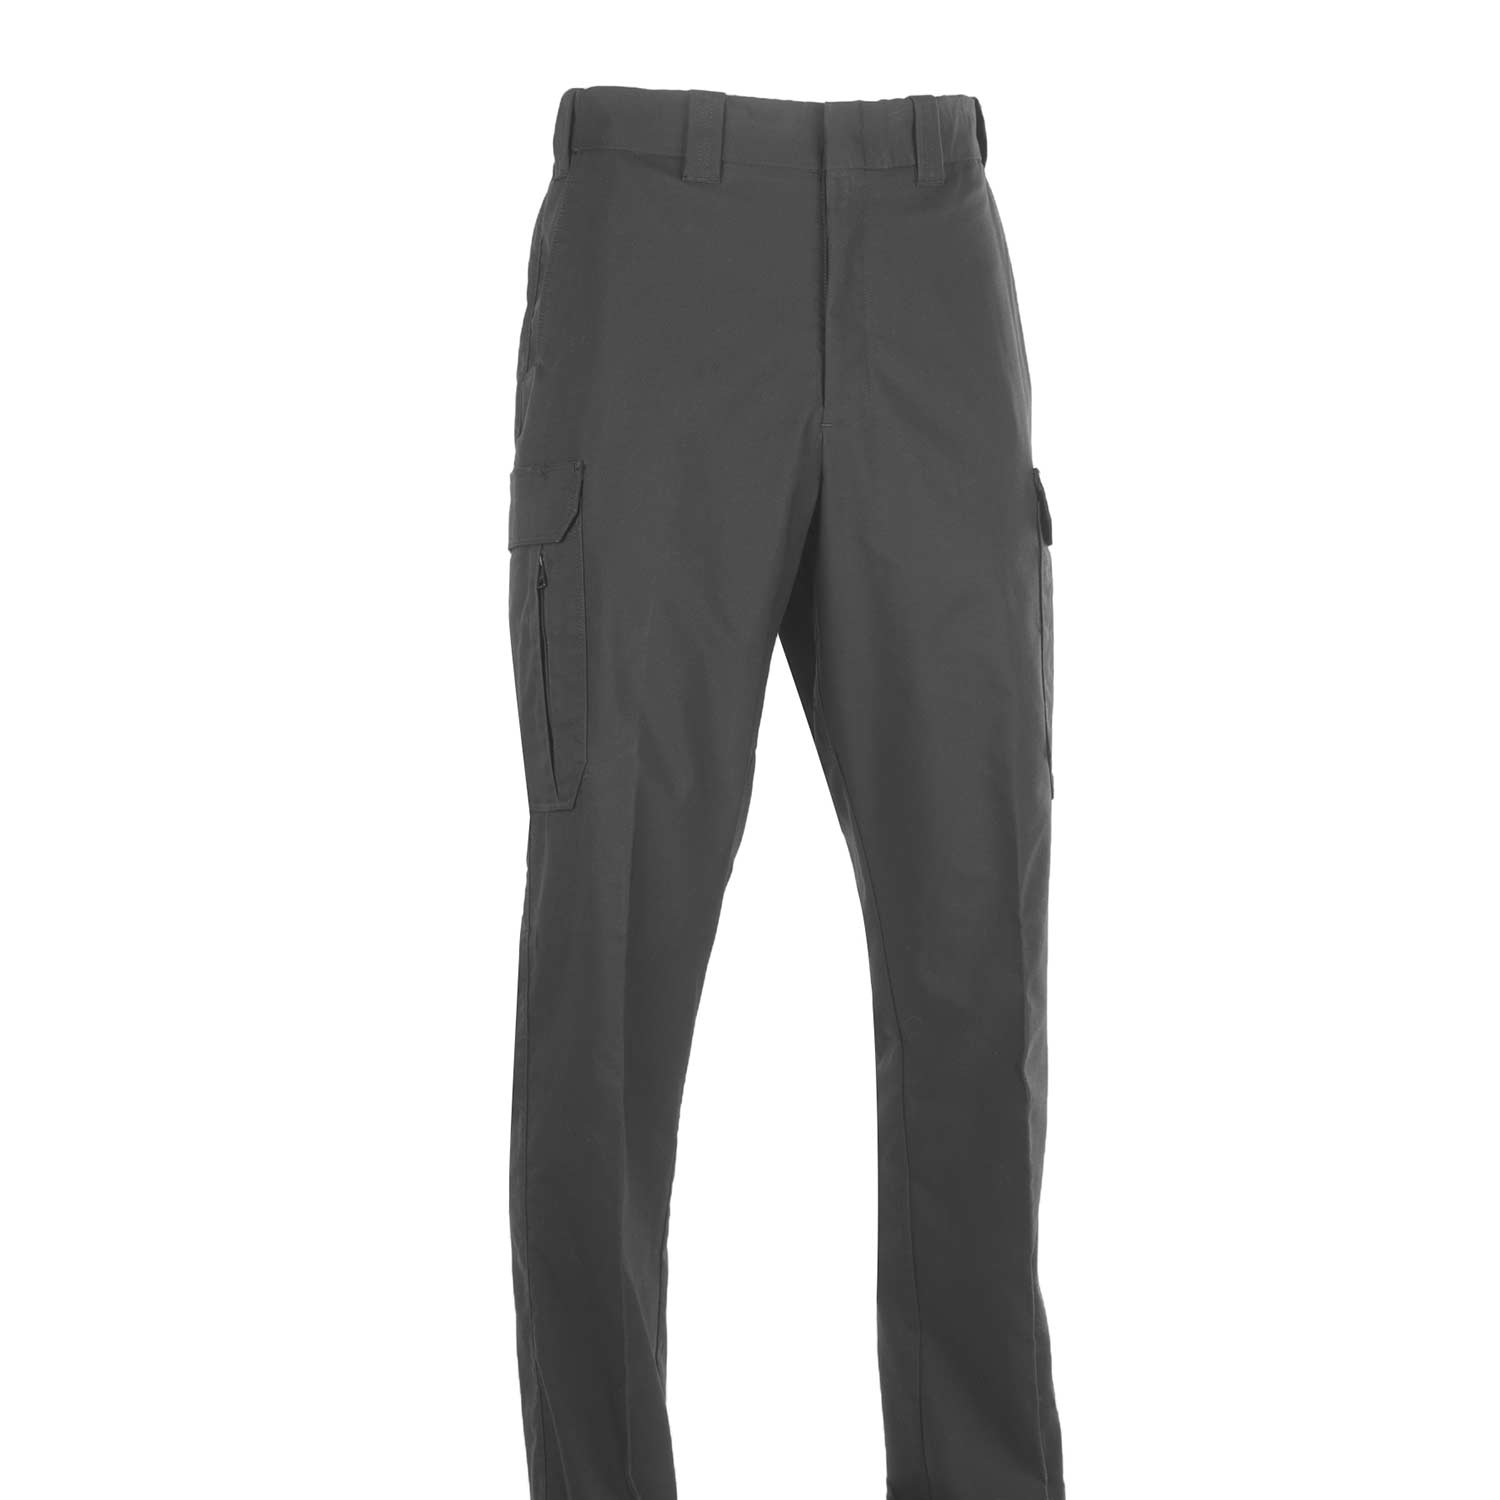 Cross Fx Elite Womens Class B Style Uniform Pants by Flying